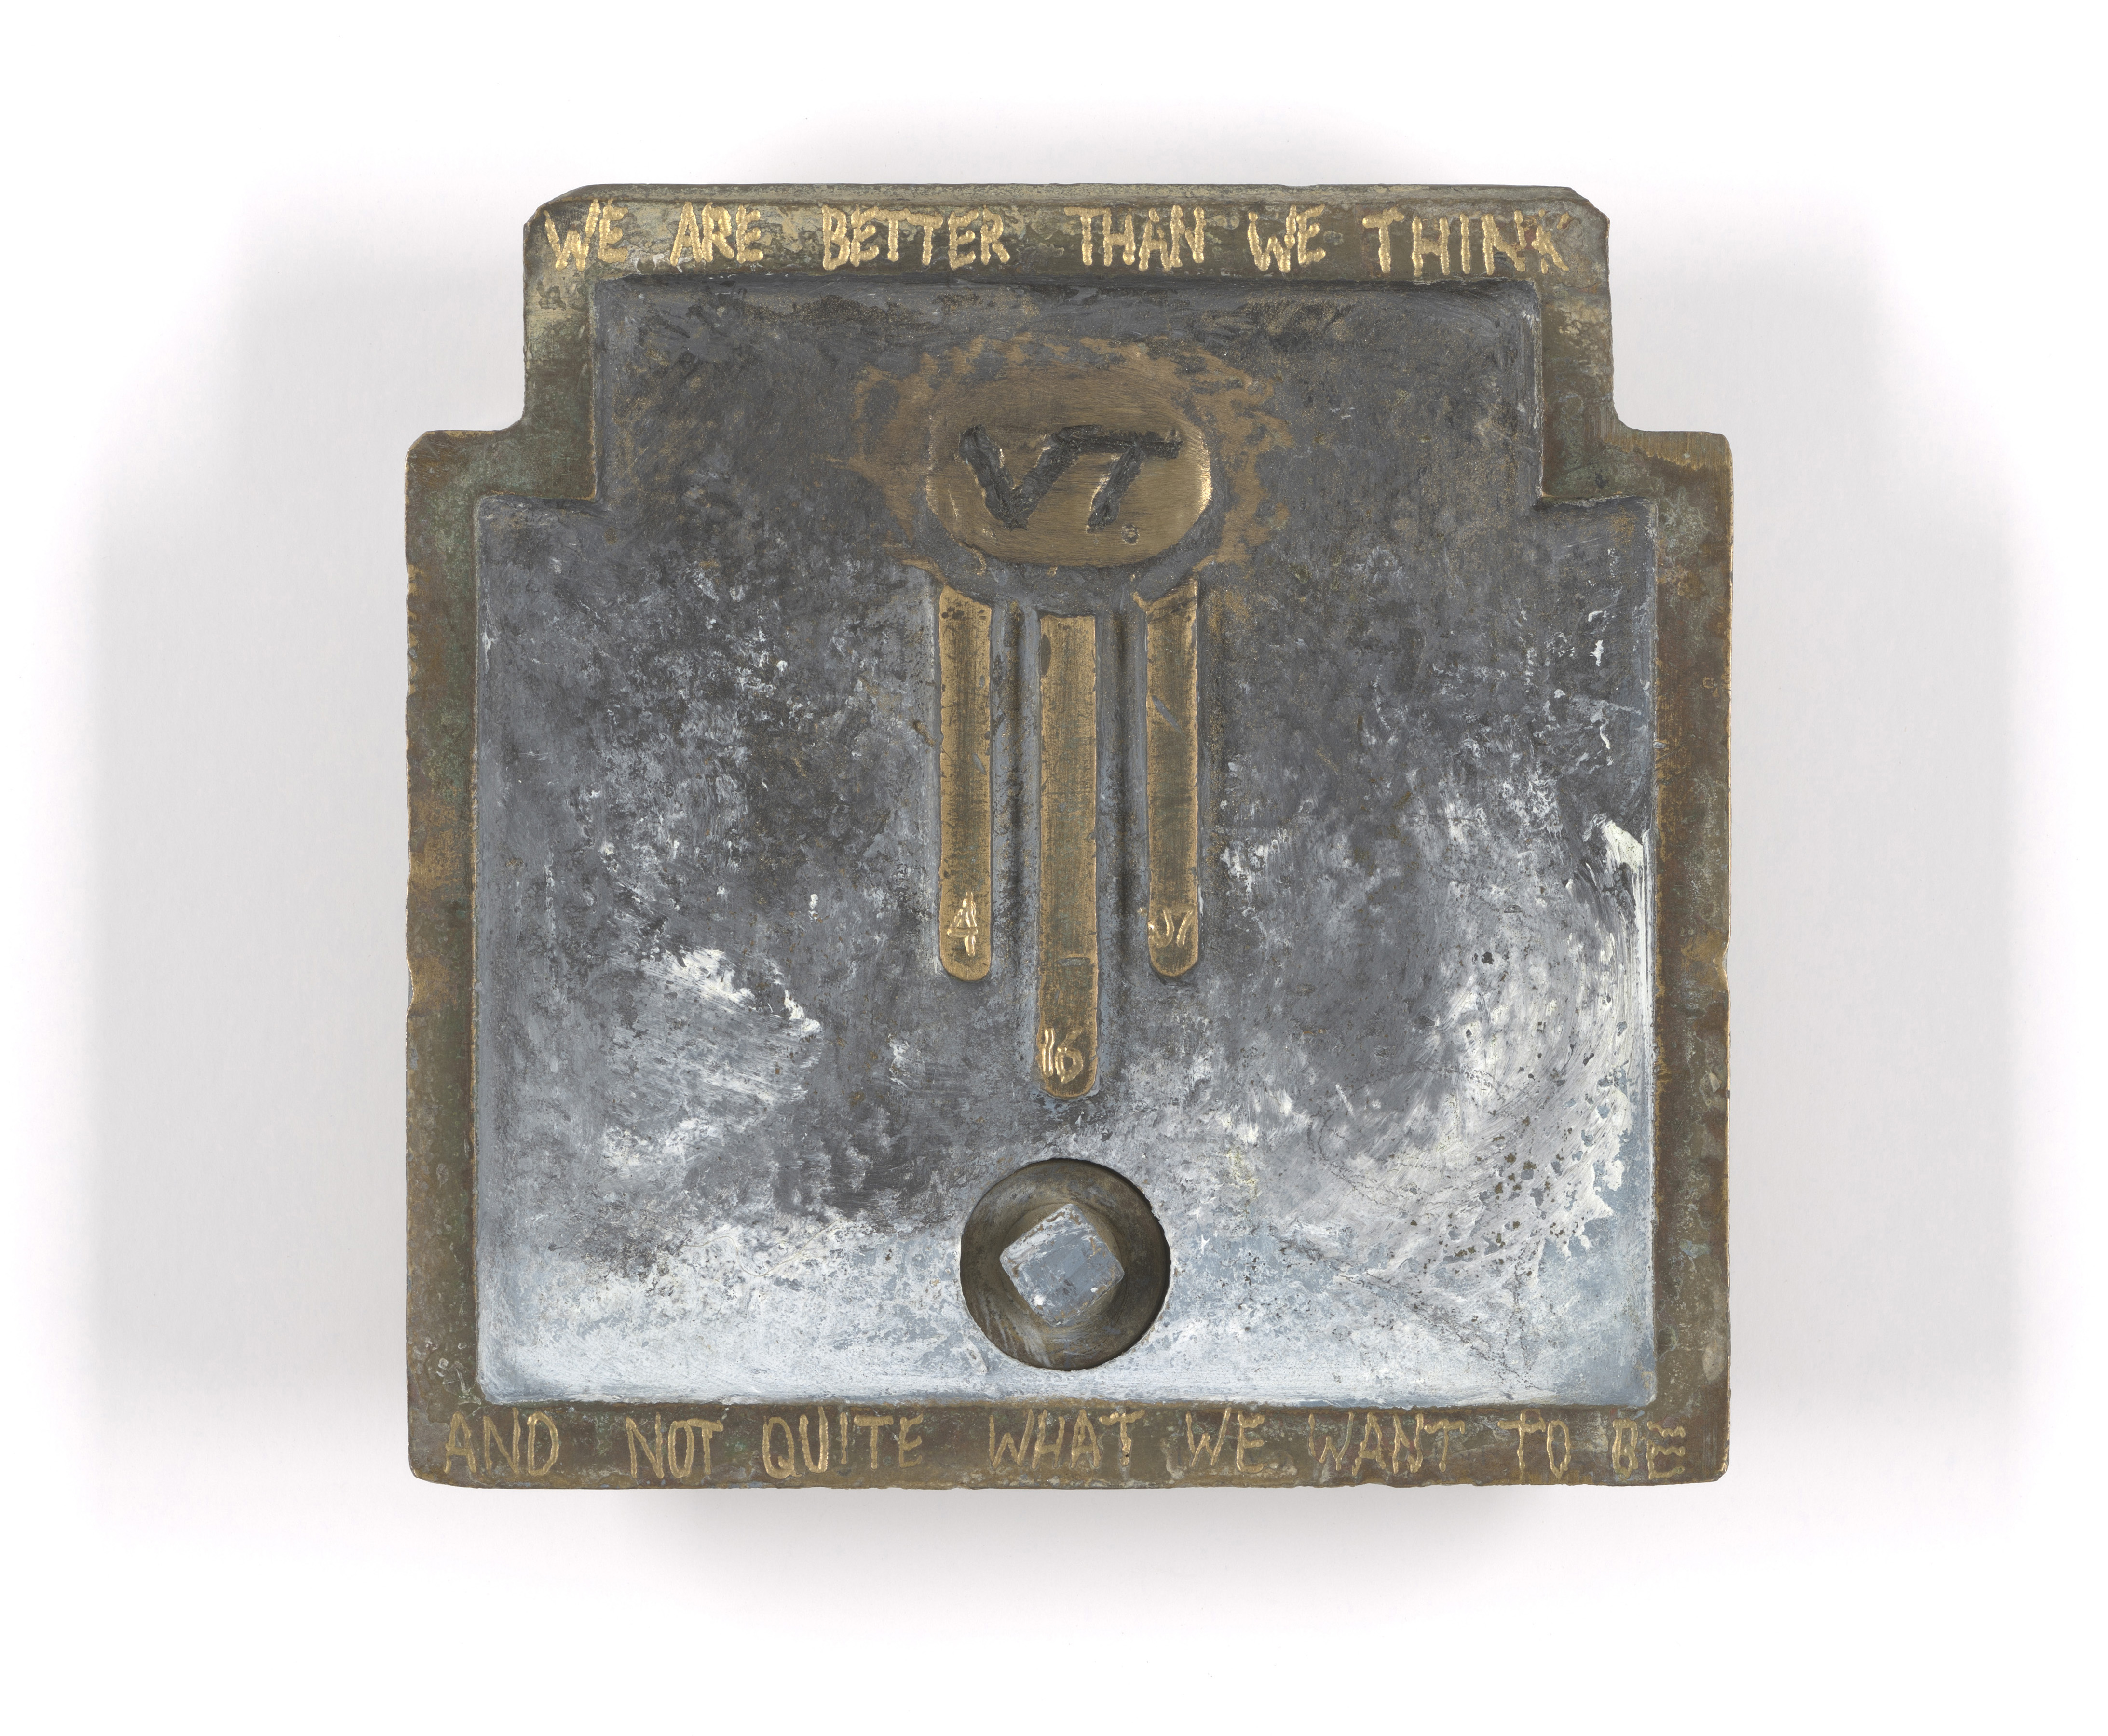 metal piece by artist Eric W. Schuttler inscribed We are better than we think, and not quite what we want to be